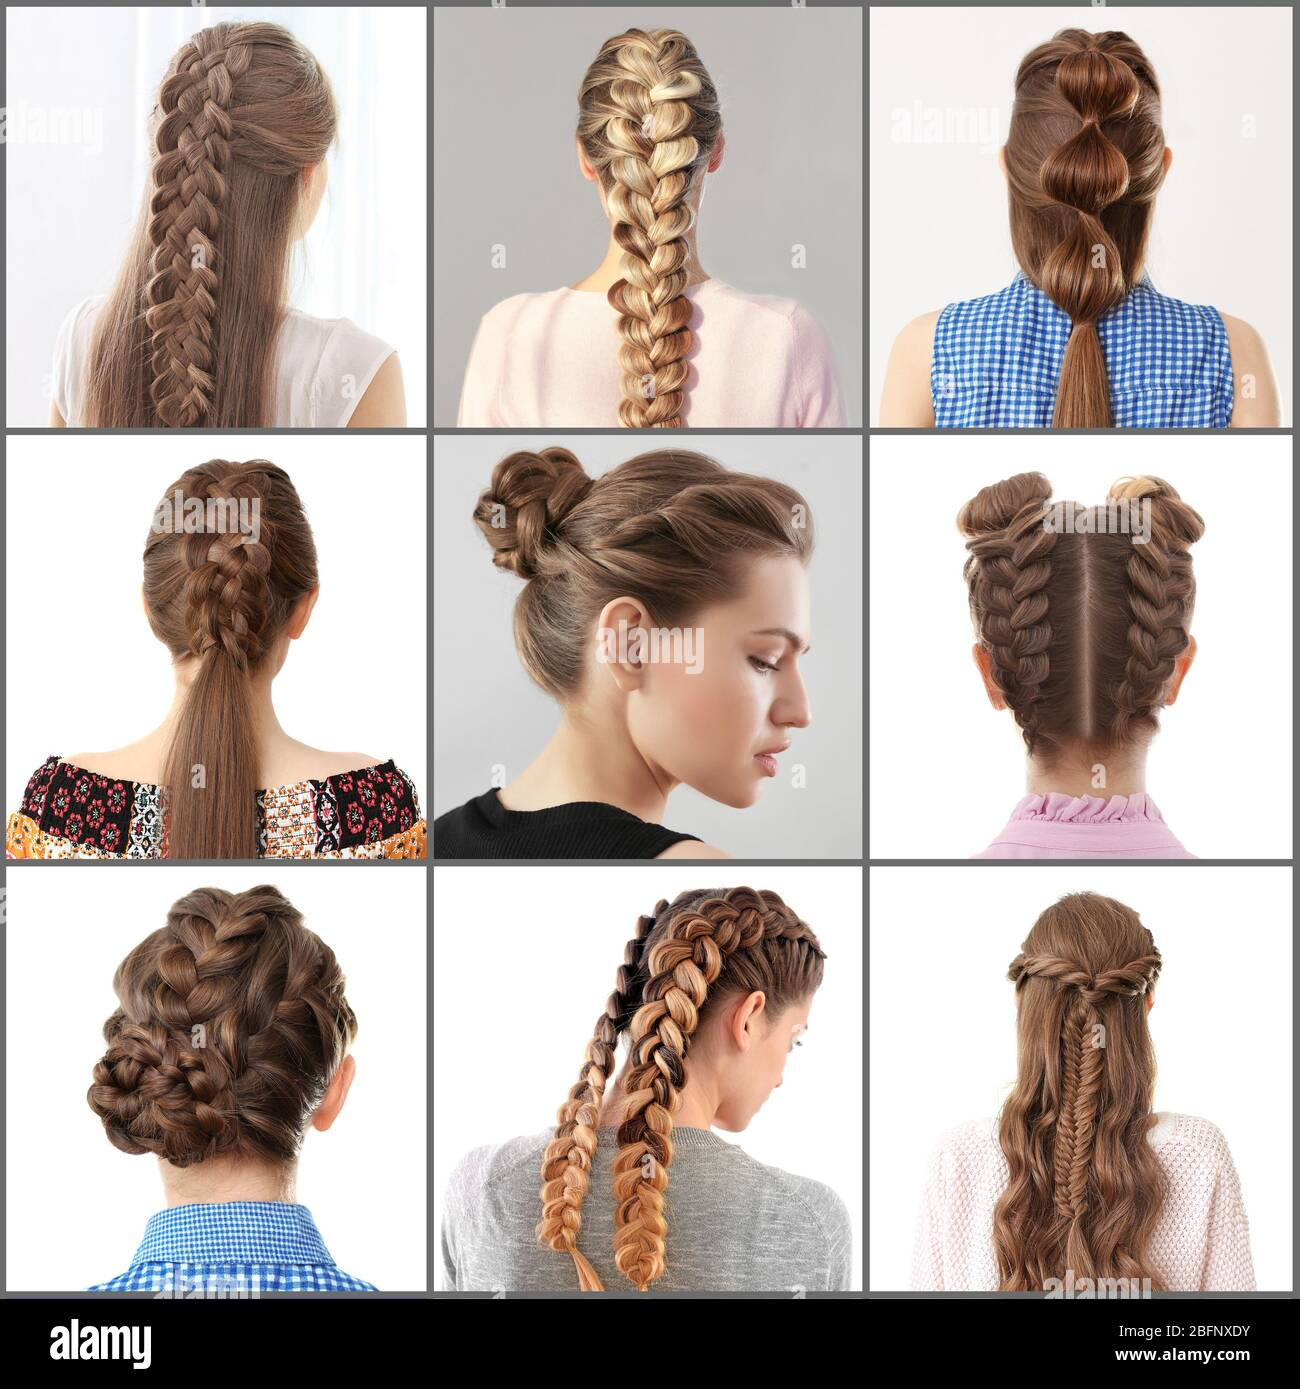 Women with different hairstyles Stock Photo   Alamy